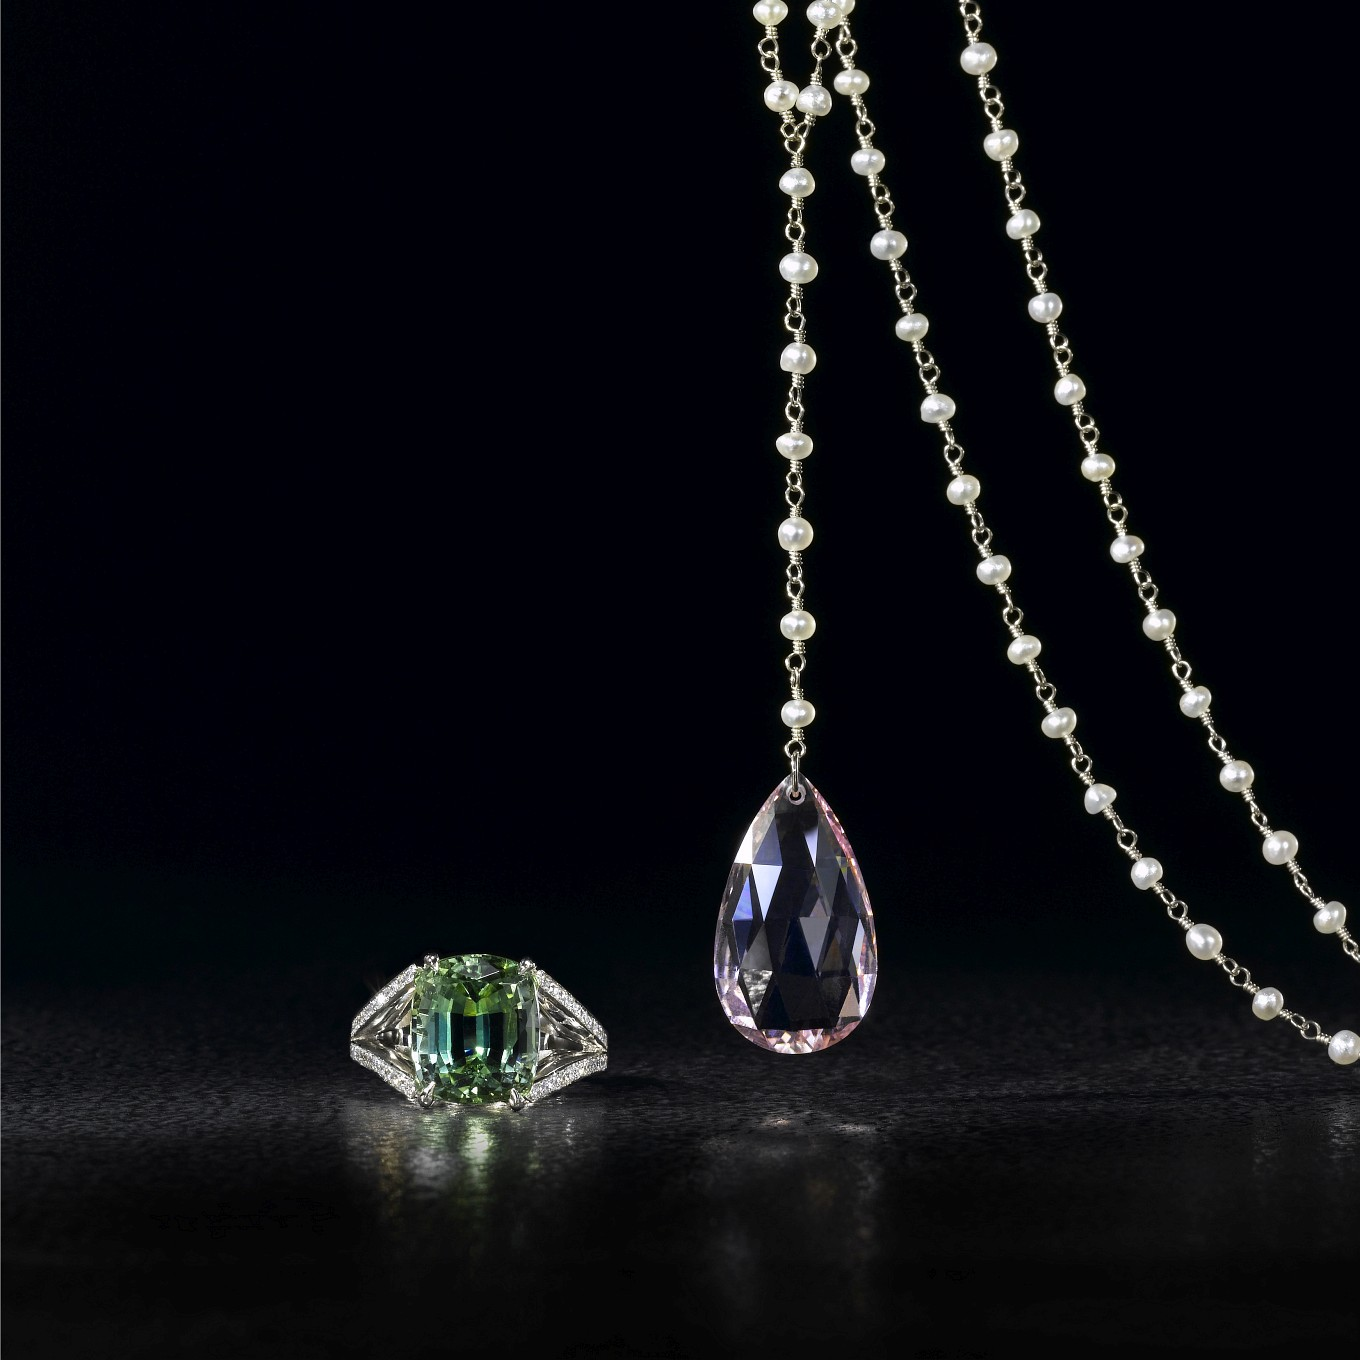 GREEN TOURMALINE & DIAMOND RING. NATURAL PEARL & WHITE GOLD DROP NECKLACE WITH MORGANITE BRIOLETTE